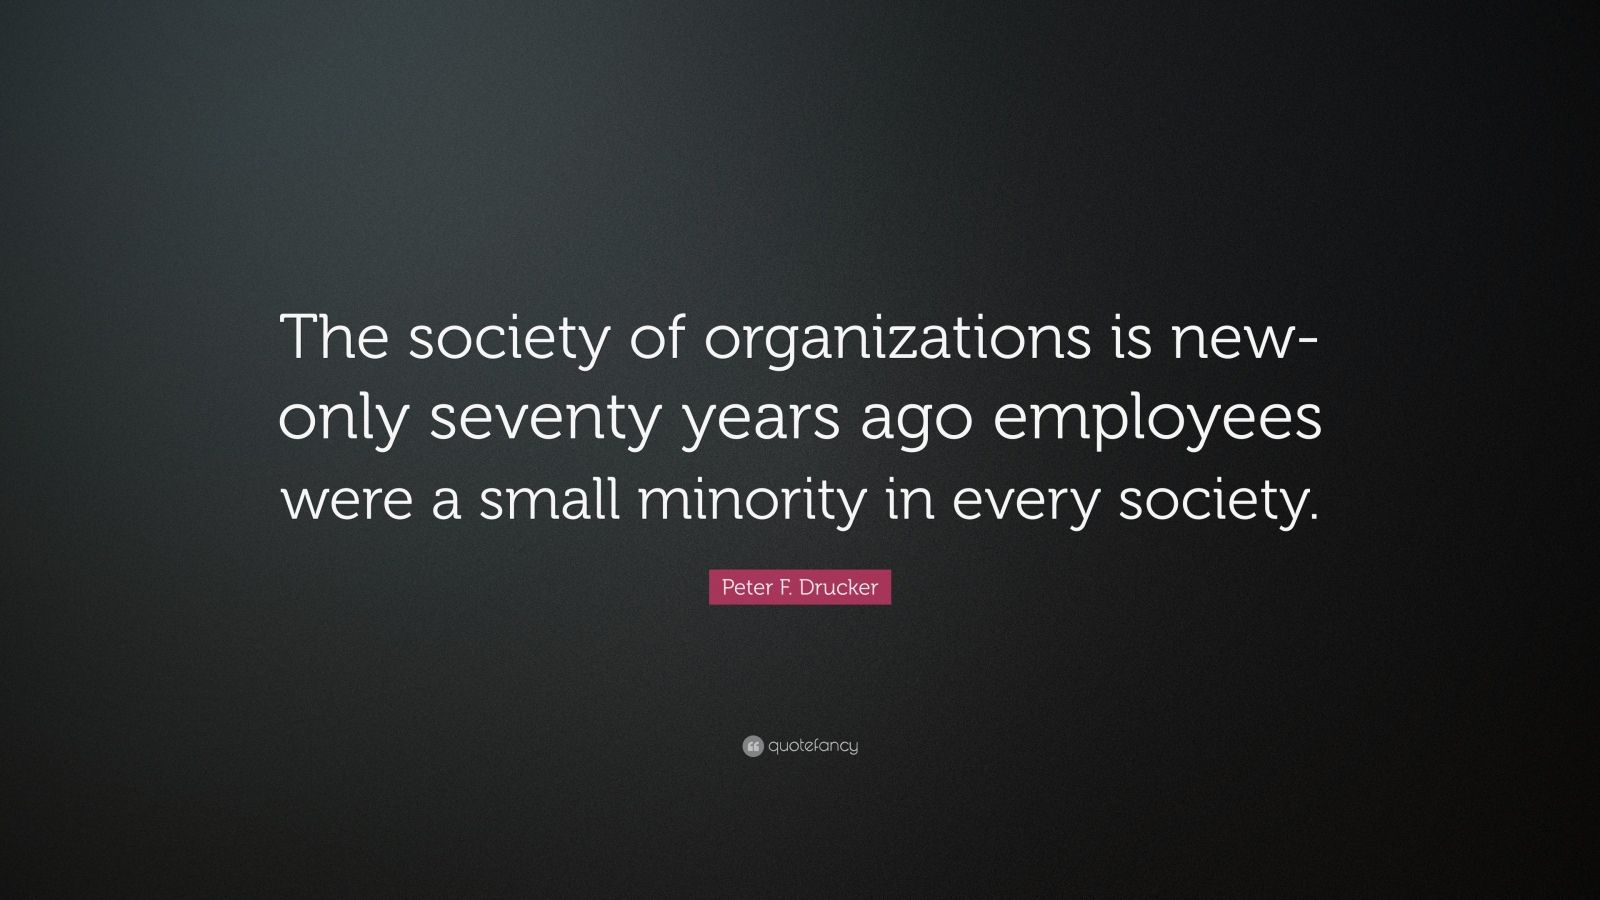 """Peter F. Drucker Quote: """"The society of organizations is new-only seventy years ago employees were a small minority in every society."""""""